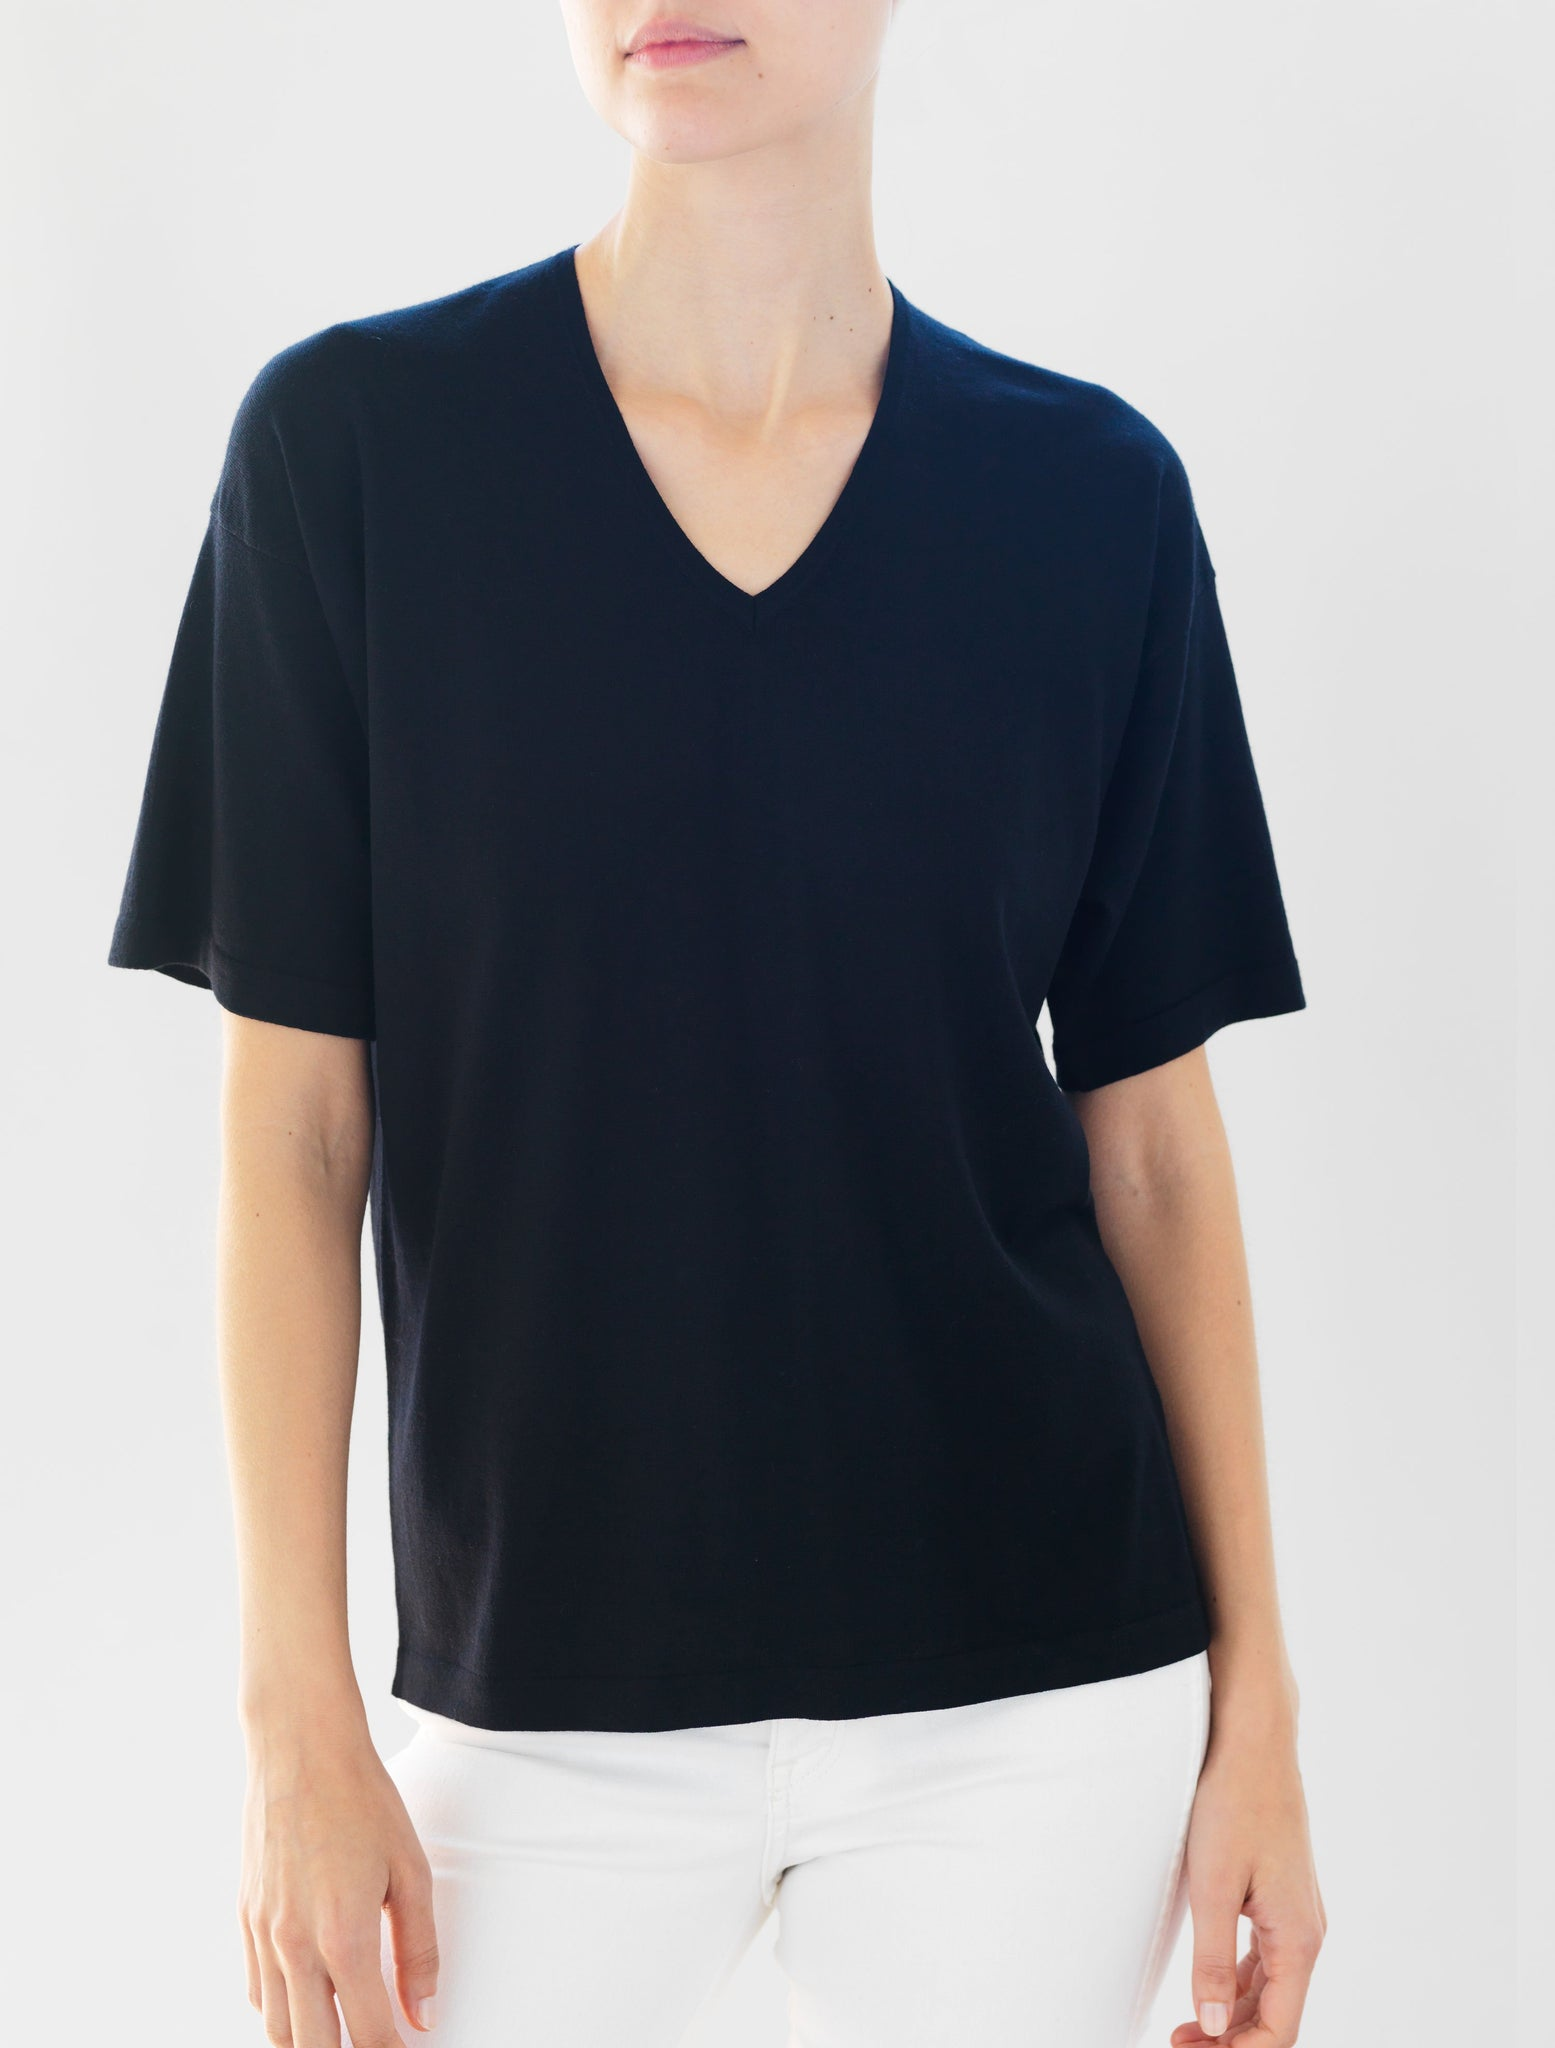 Luxo Knit T V-Neck - Black